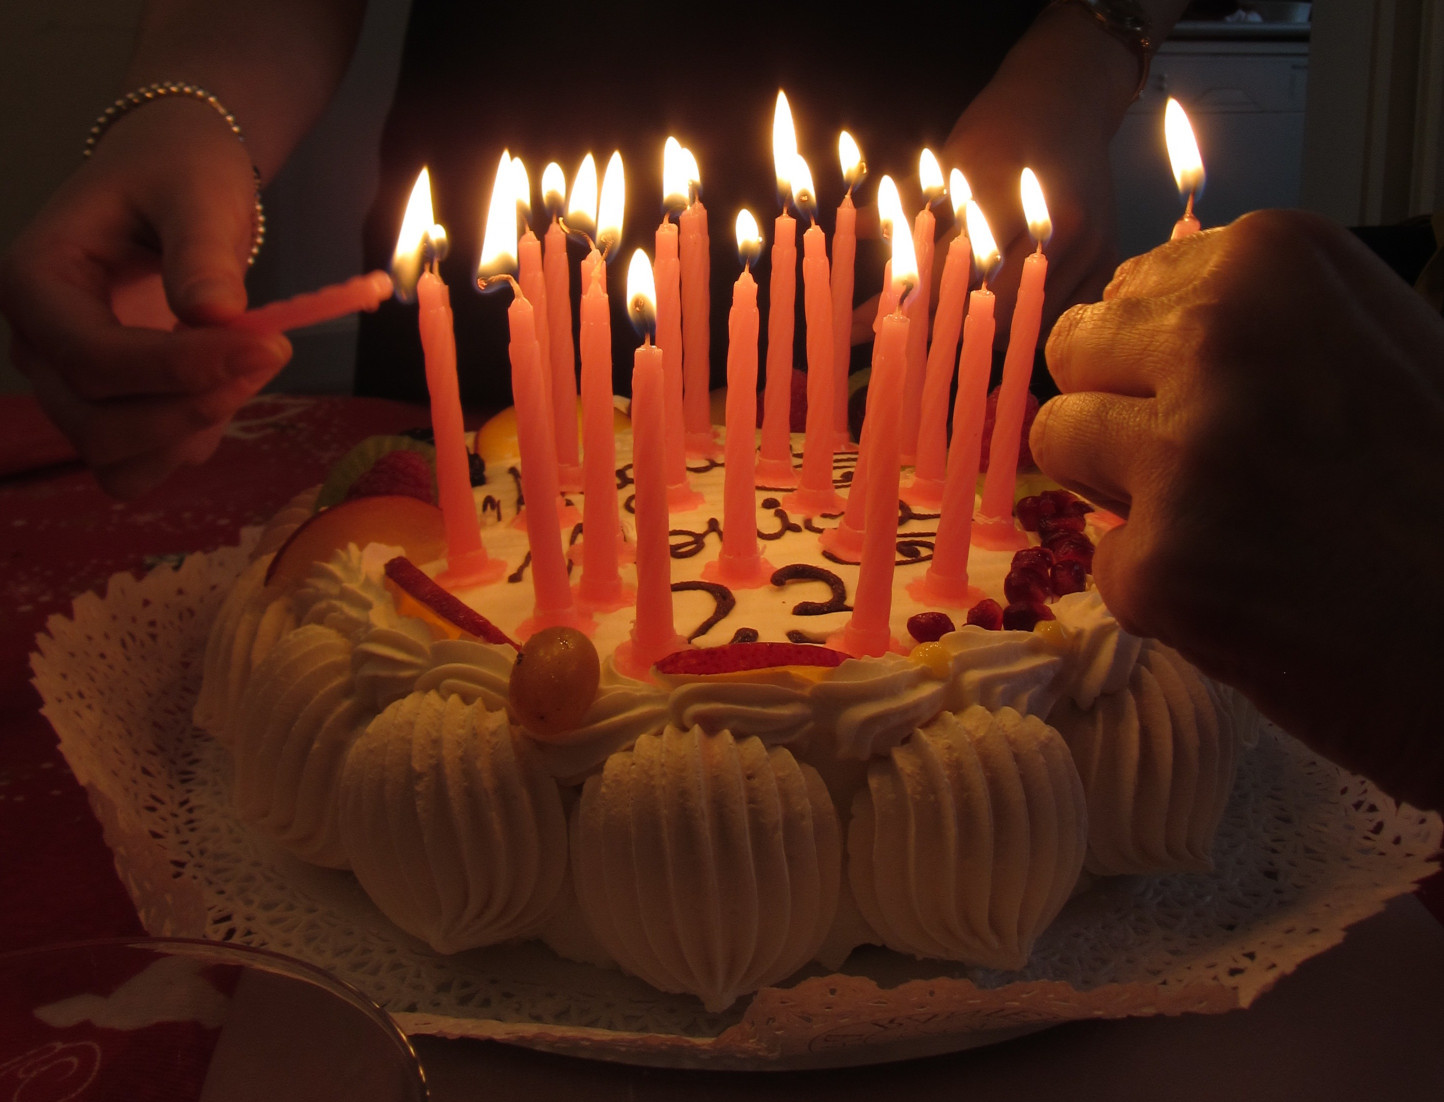 Birthday Cake With Candles  Blowing Out Birthday Candles Makes the Cake Taste Better